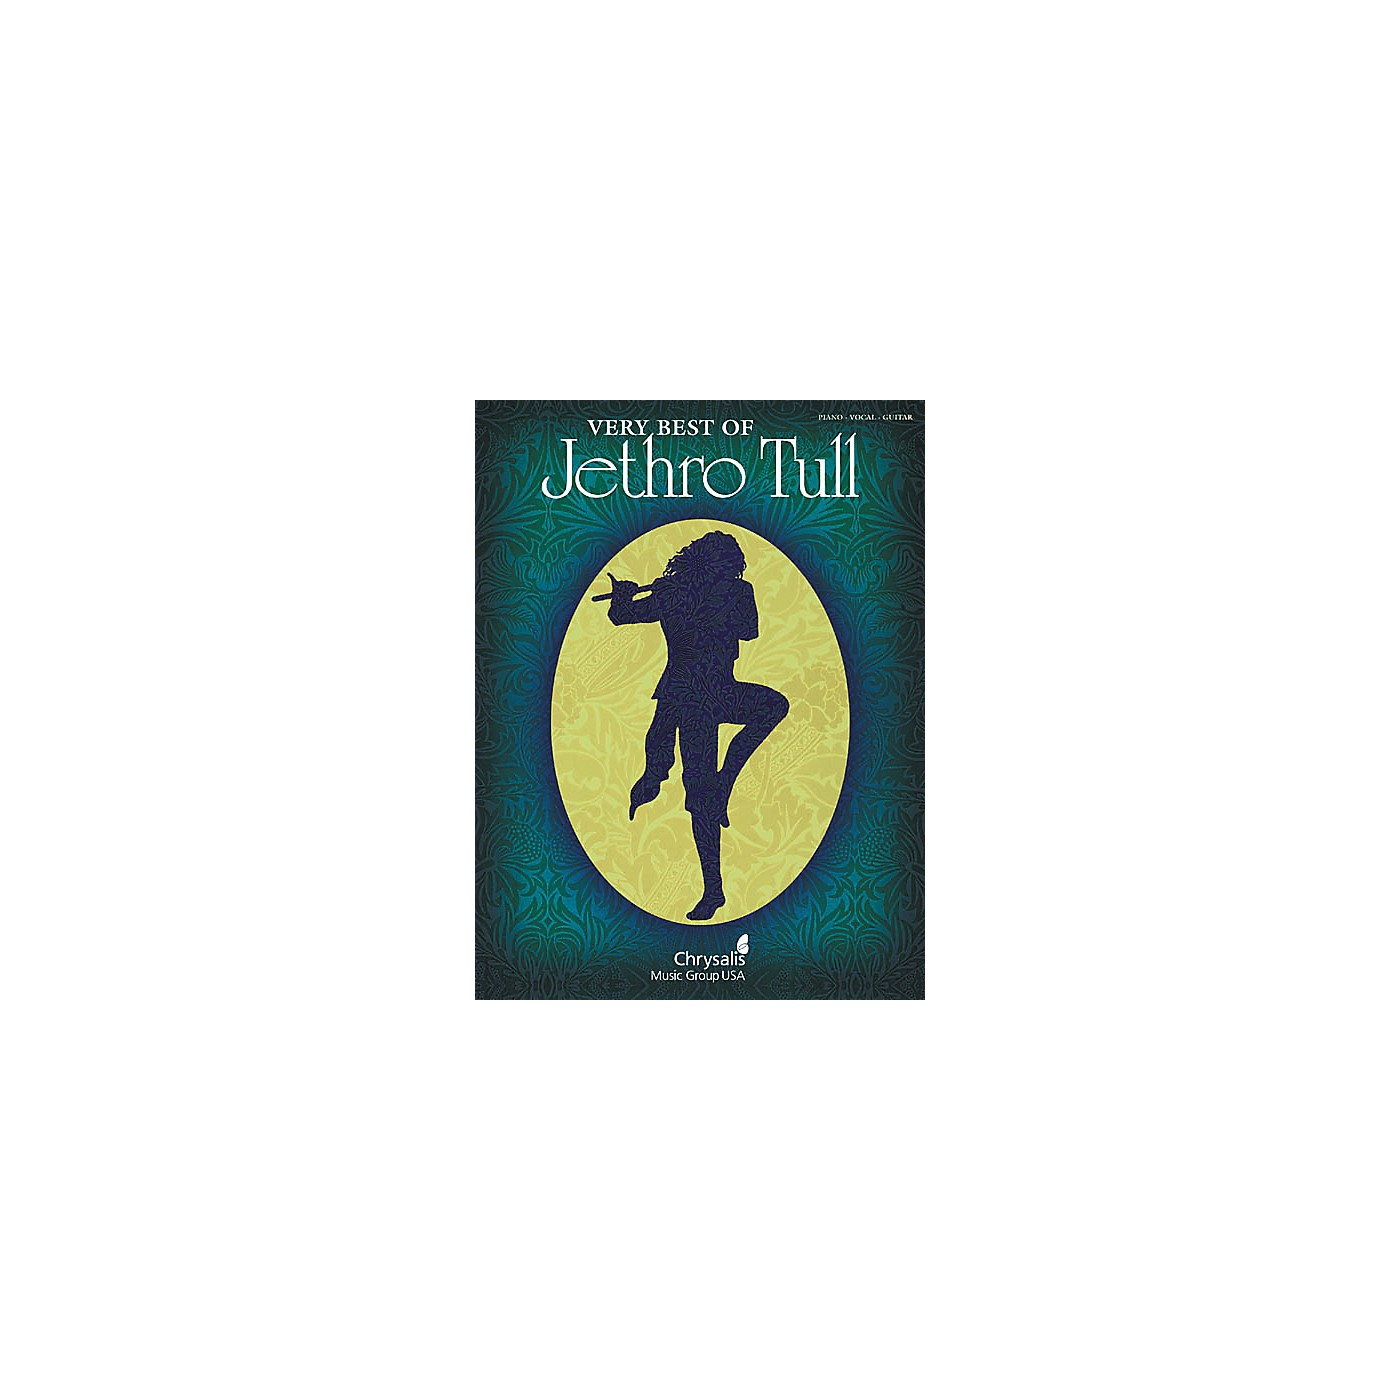 Hal Leonard Very Best of Jethro Tull Piano, Vocal, Guitar Songbook thumbnail